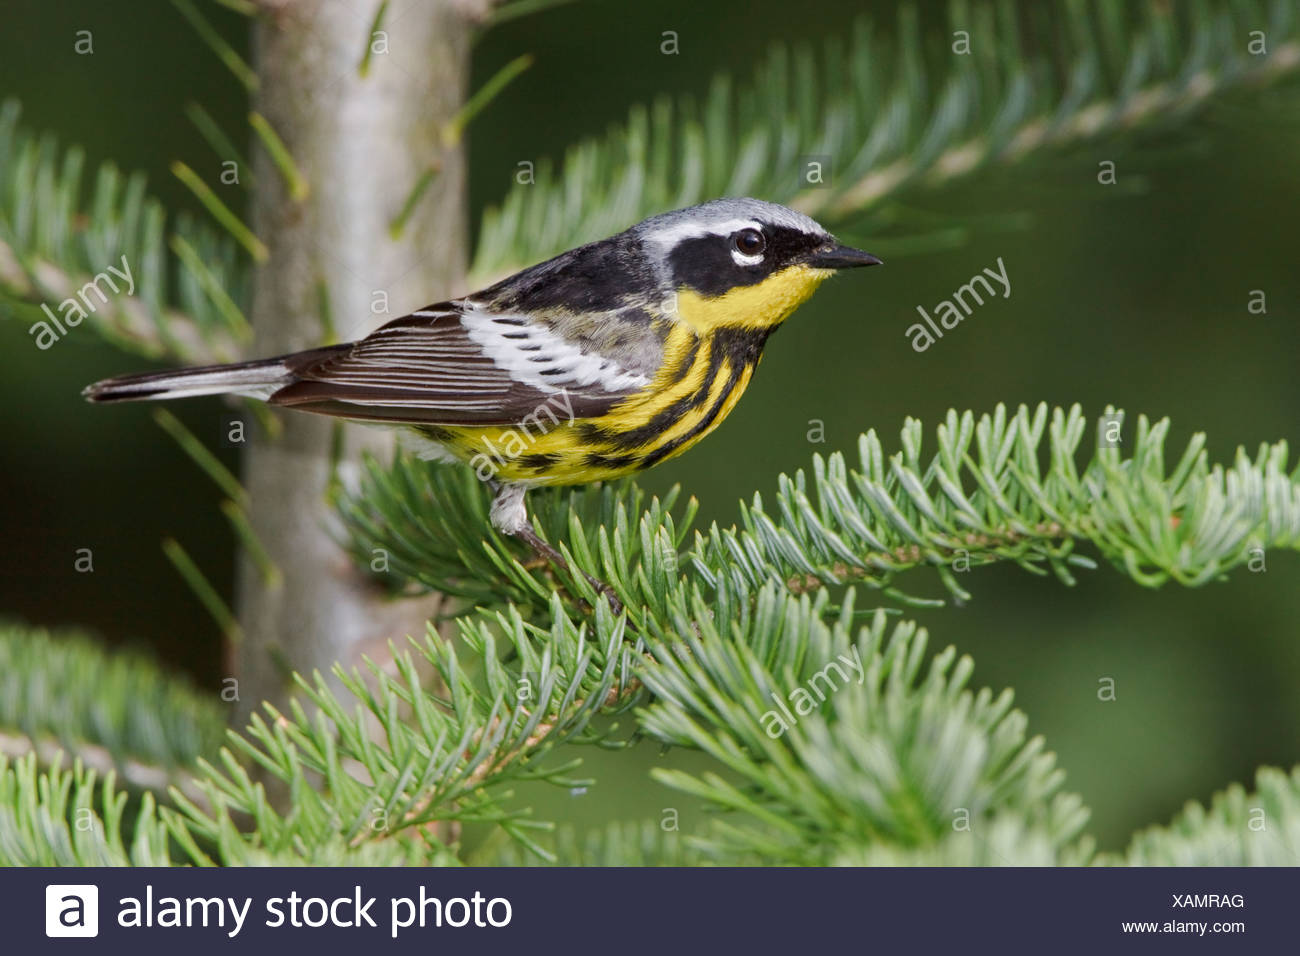 Magnolia Warbler (Dendroica magnolia) perched on a spruce branch near Huntsville, Ontario Canada. - Stock Image